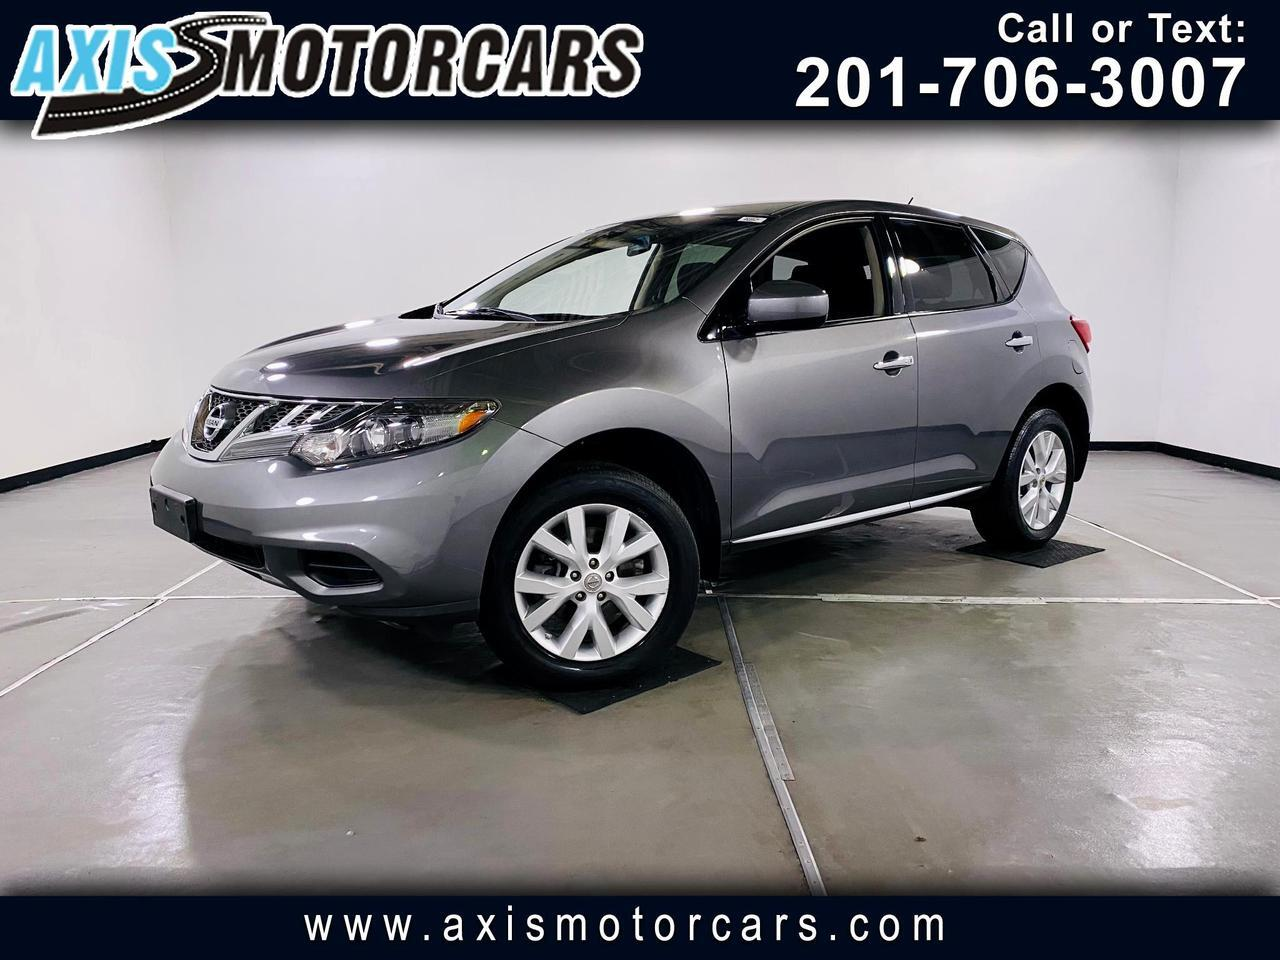 2014 Nissan Murano AWD 4dr Jersey City NJ